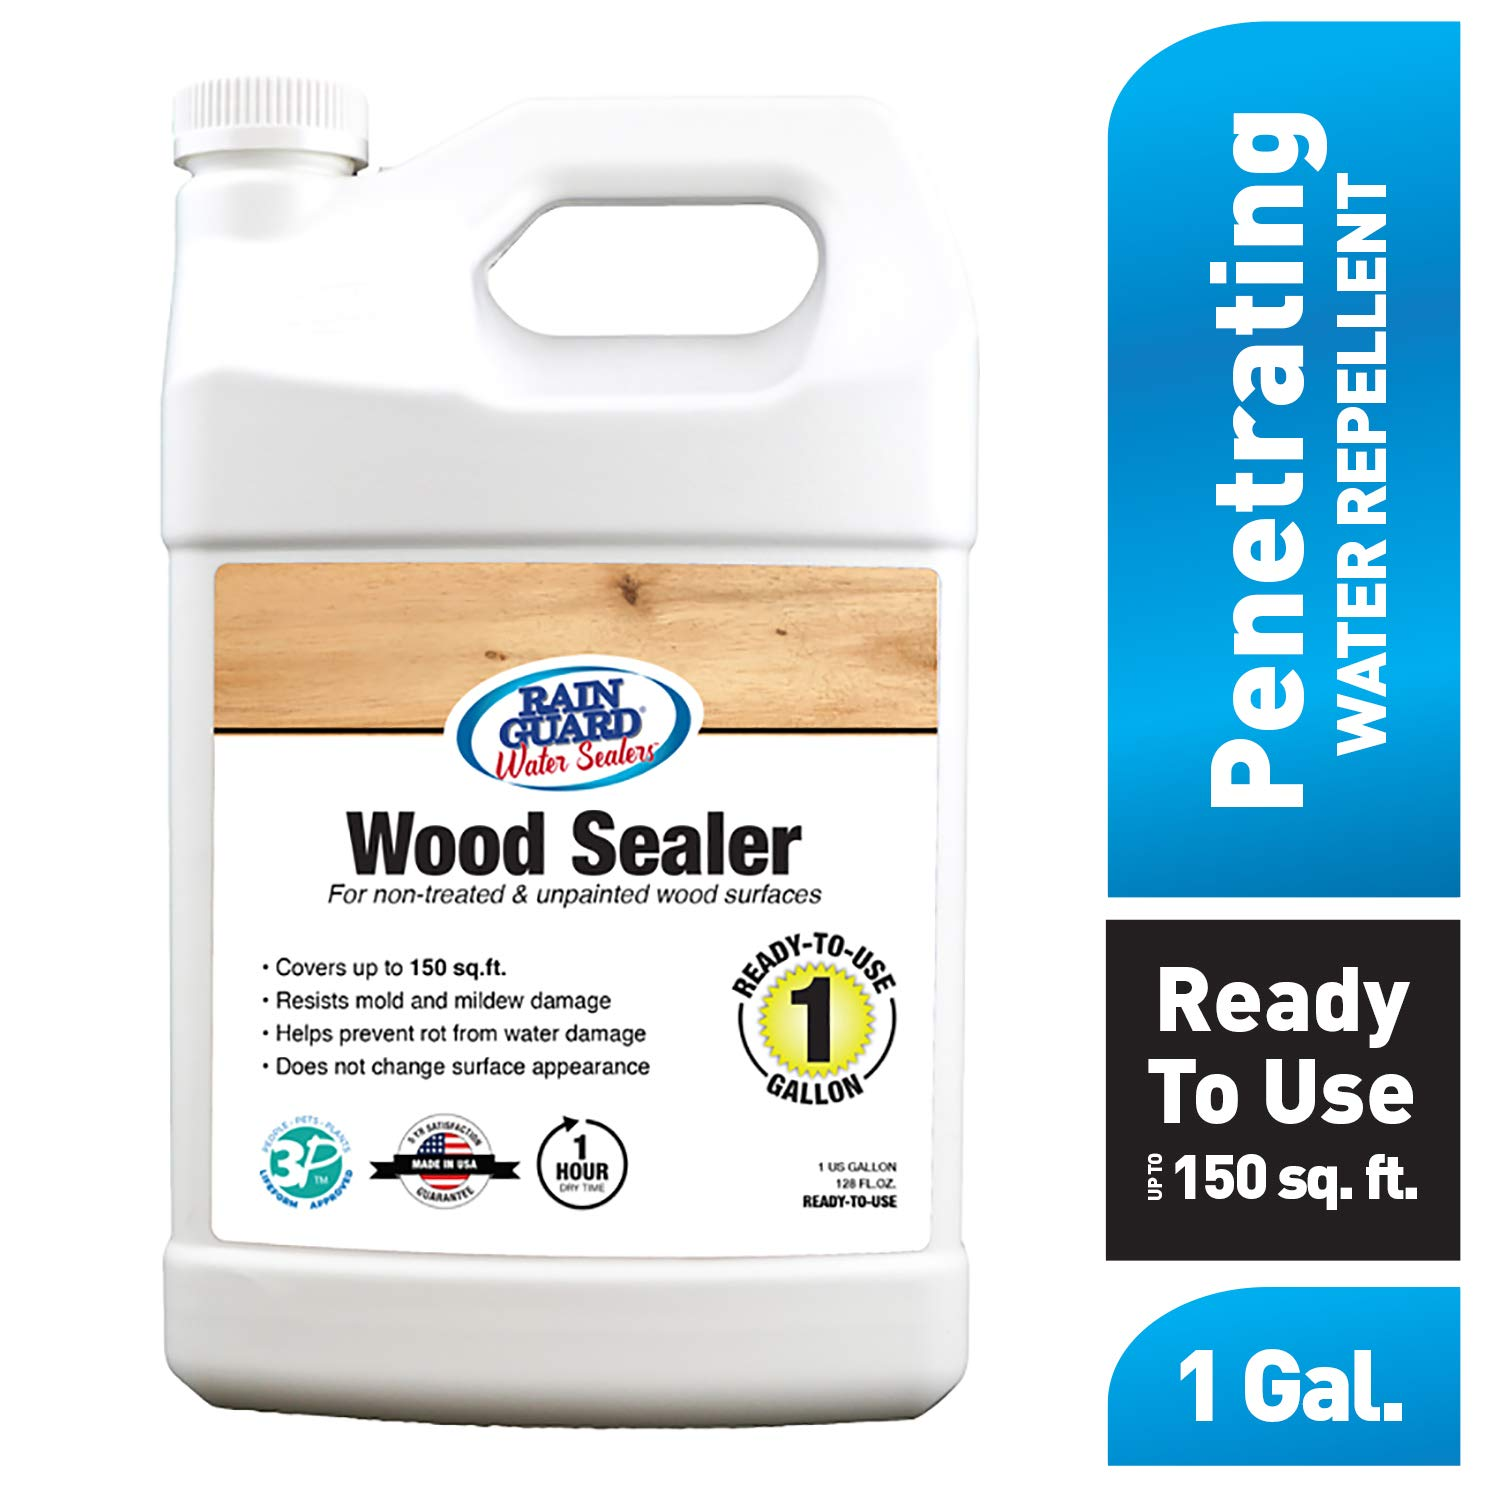 Rain Guard Water Sealers SP-8004 Wood Sealer Ready to Use - Water Repellent for Interior or Exterior Wood - Covers up to 200 Sq. Ft, 1 Gallon, Invisible Clear